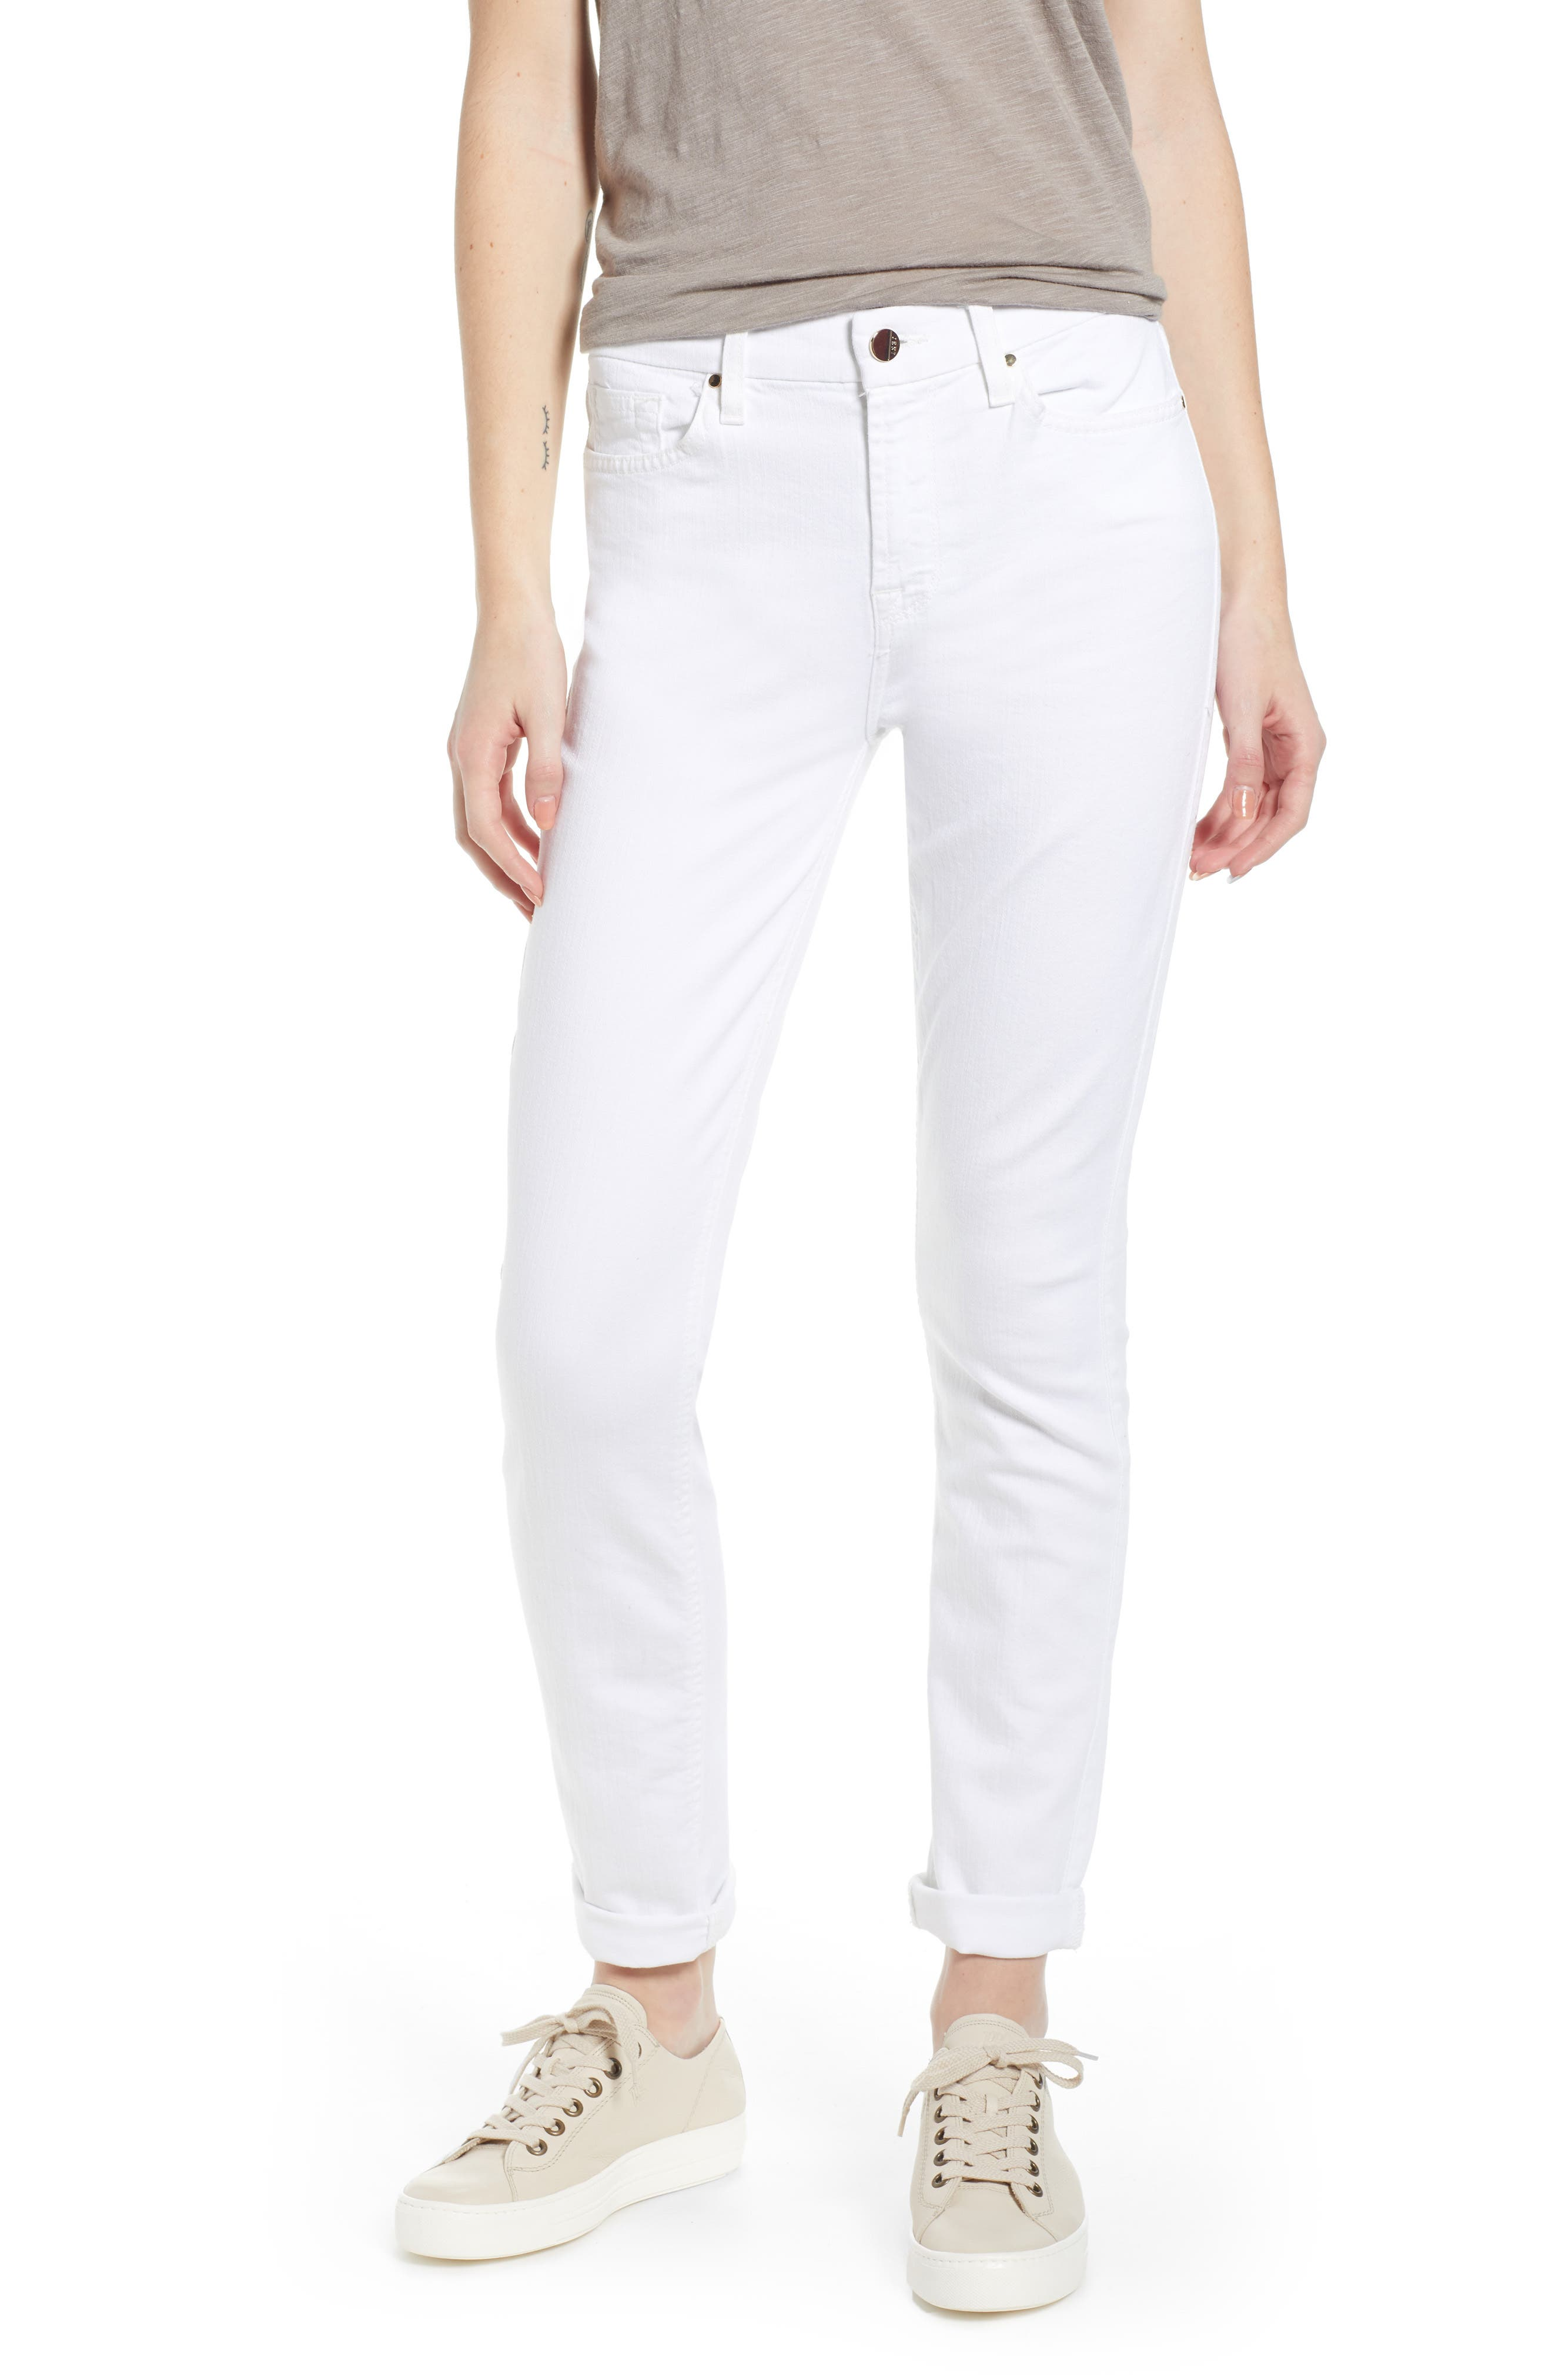 JEN7 BY 7 FOR ALL MANKIND, Stretch Skinny Jeans, Main thumbnail 1, color, WHITE